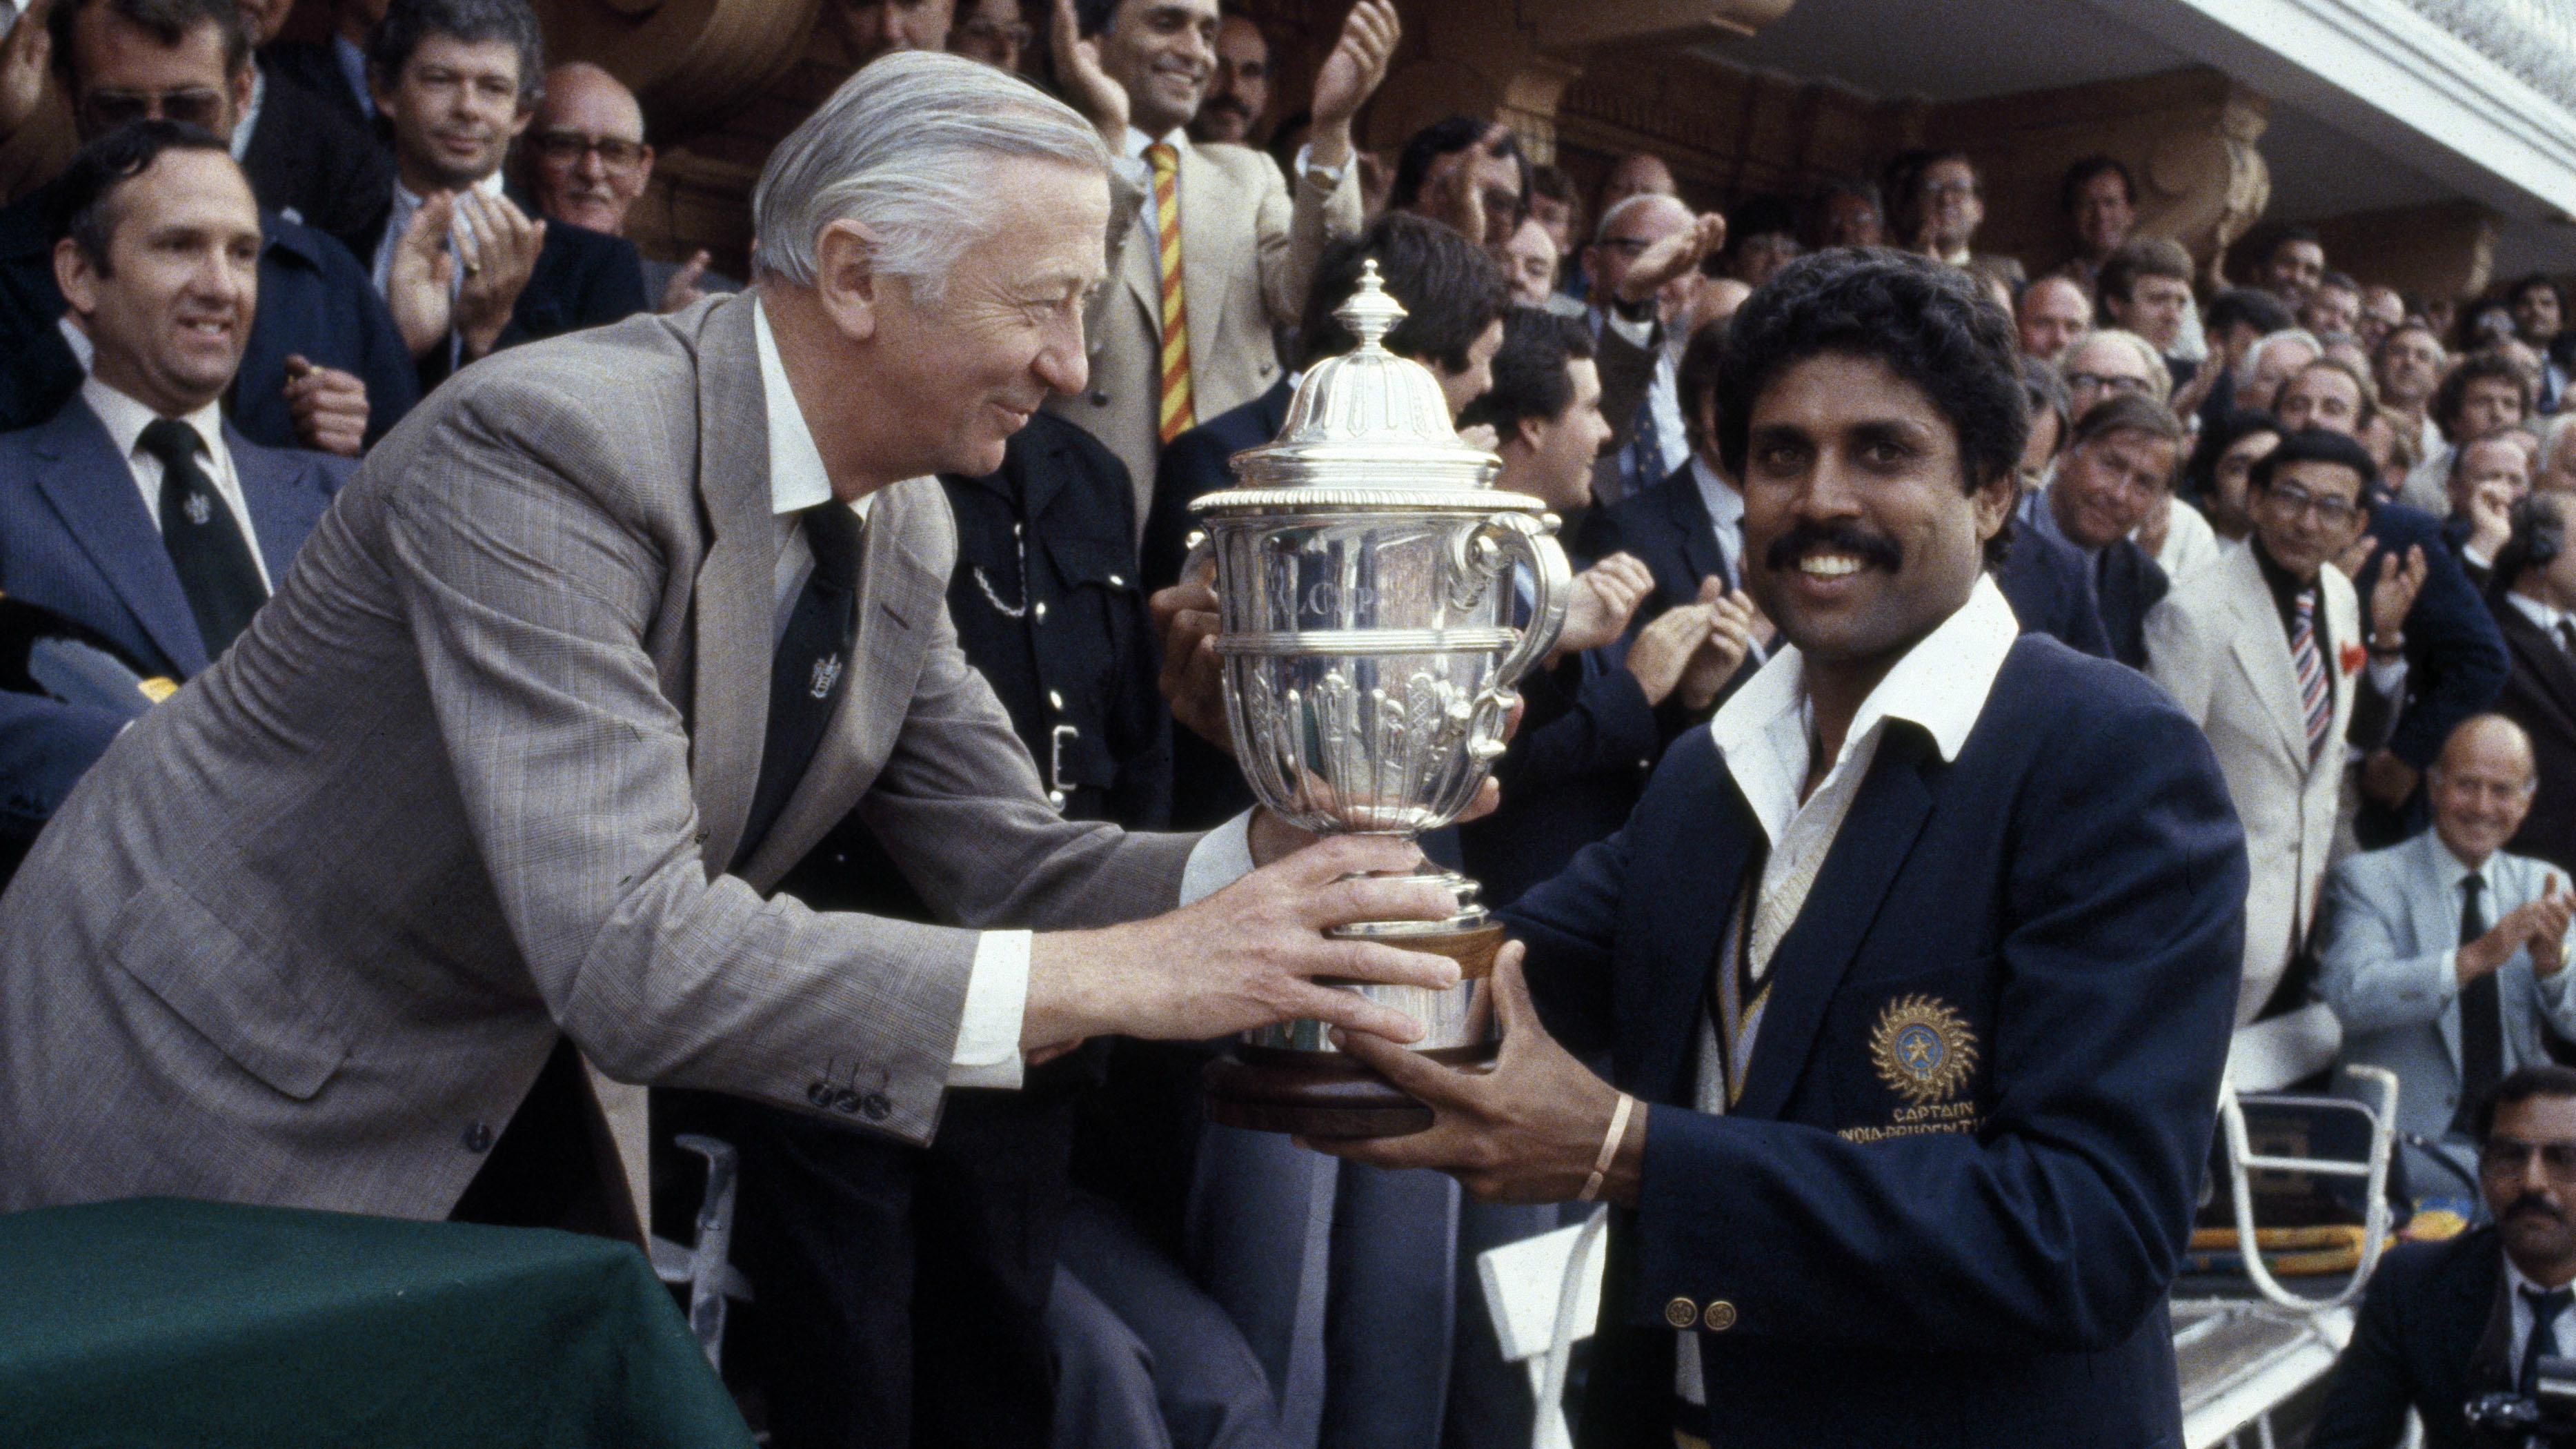 As Kapil Dev's men clinched the World Cup, it was then labelled as India's biggest cricketing moment after the 1971 series victories in West Indies and England under Ajit Wadekar.